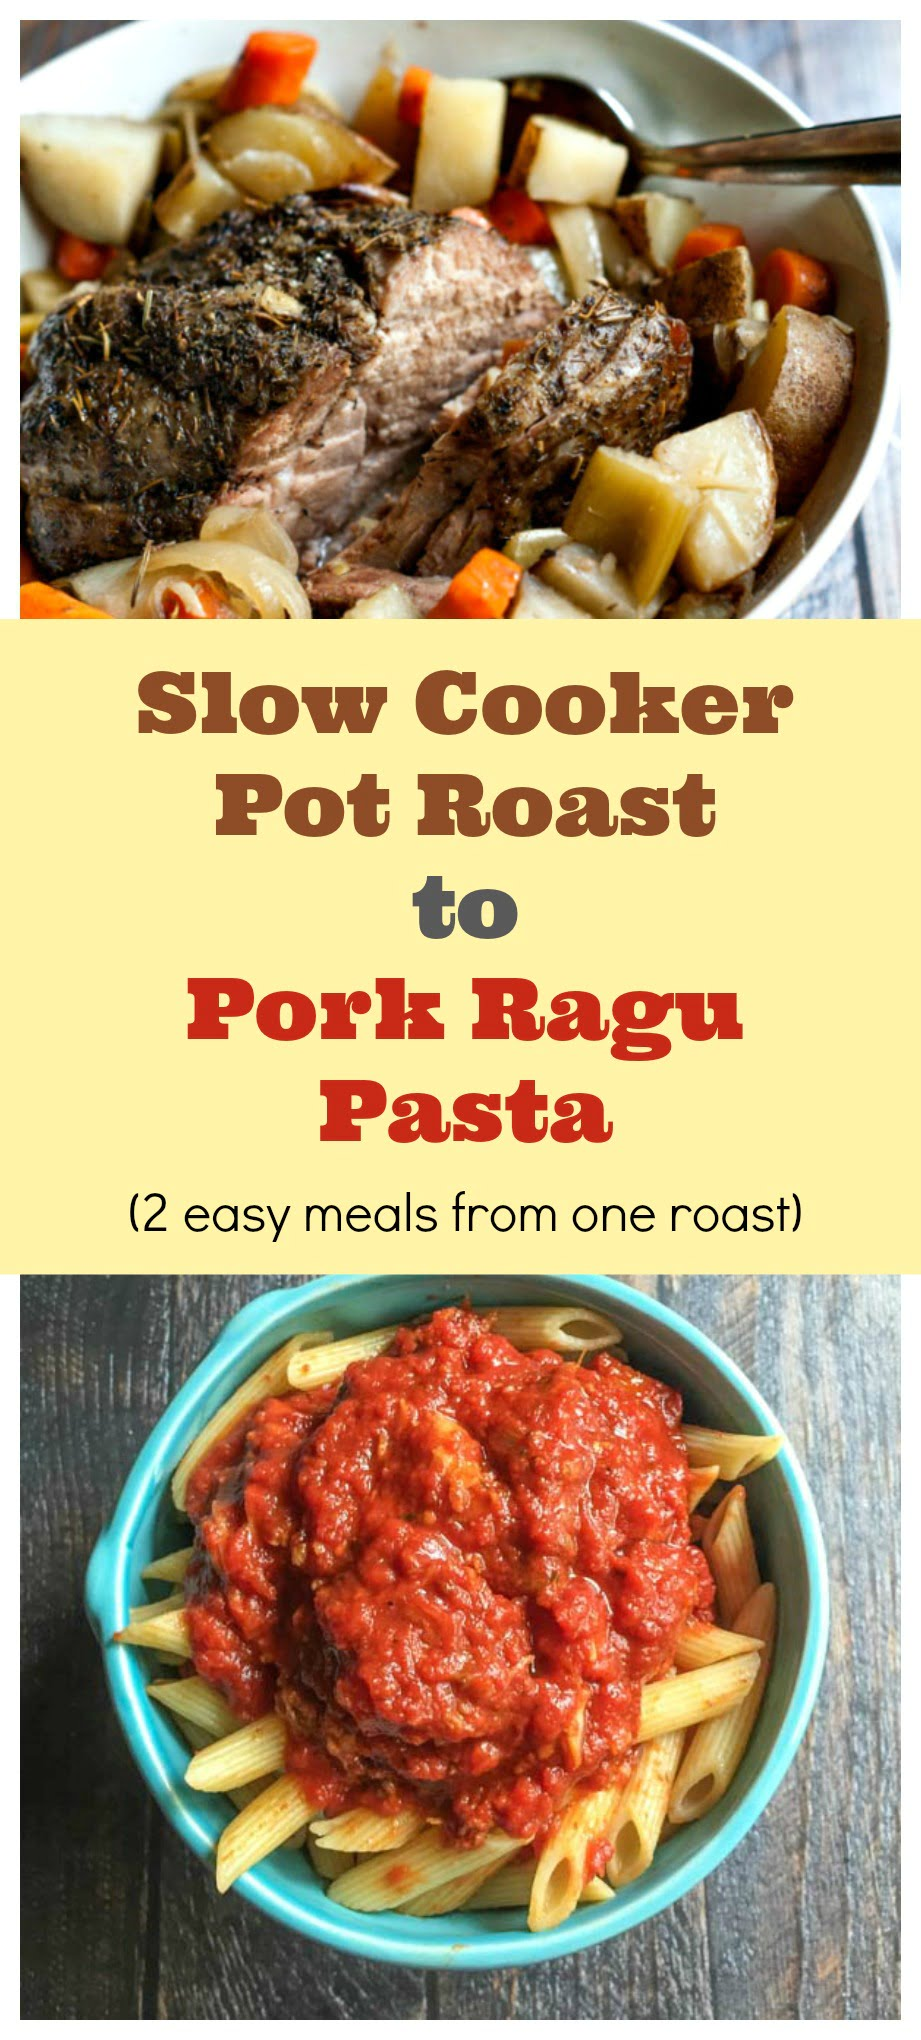 This slow cooker roast to pork ragu recipe gives you two very simple but delicious meals from one pot roast. Make your roast one night and pasta with pork ragu the next.